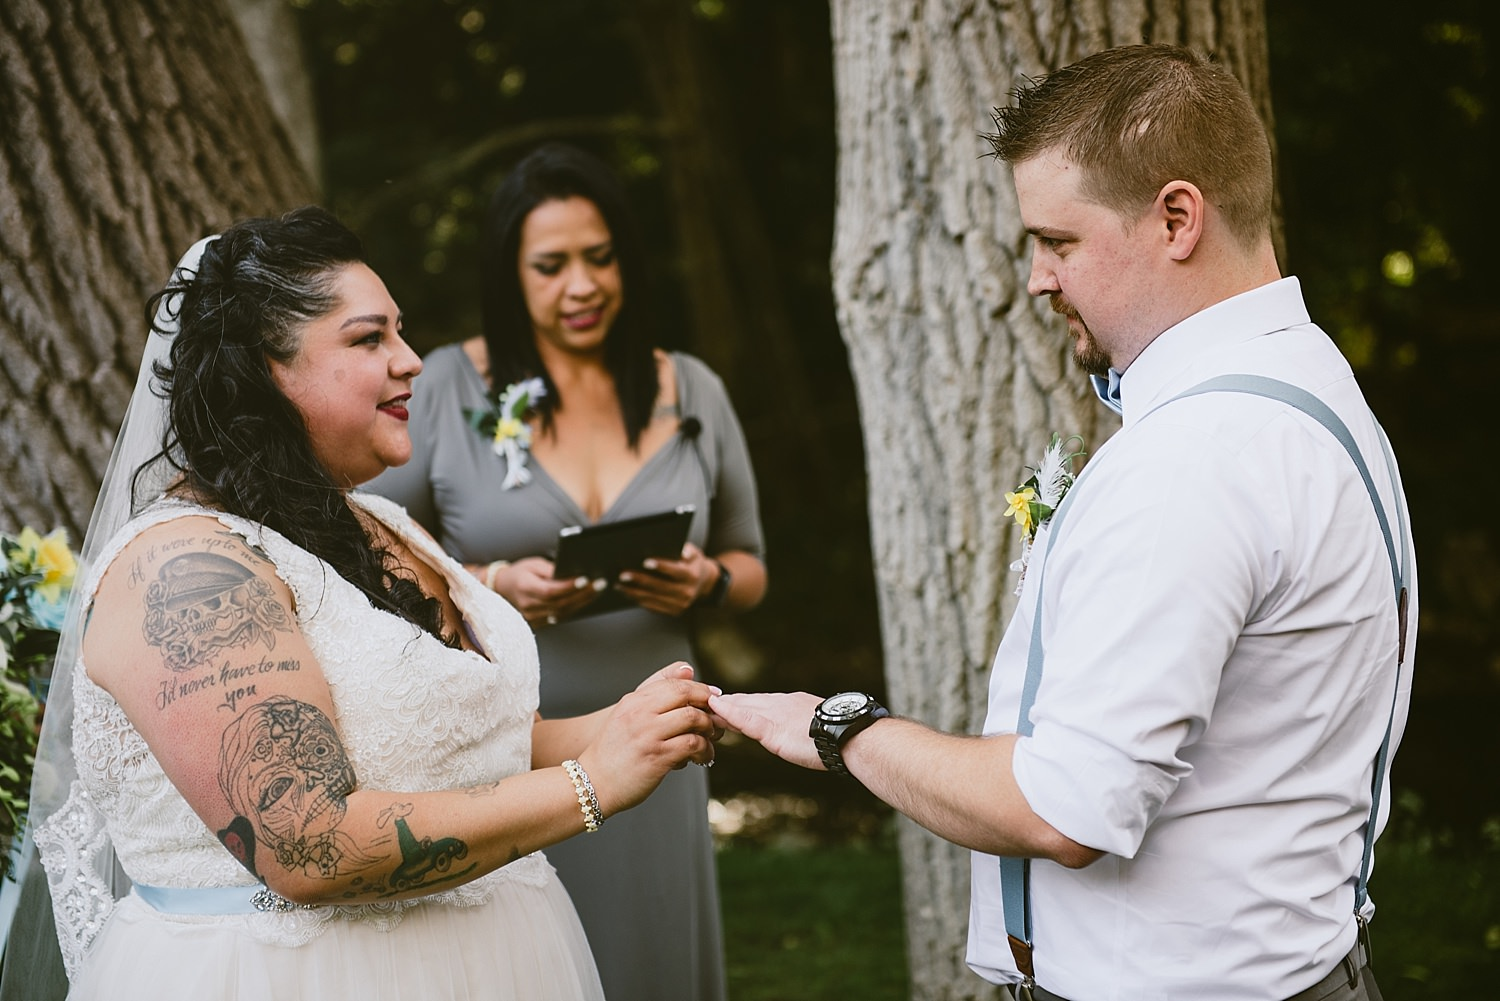 bride putting the ring on the groom